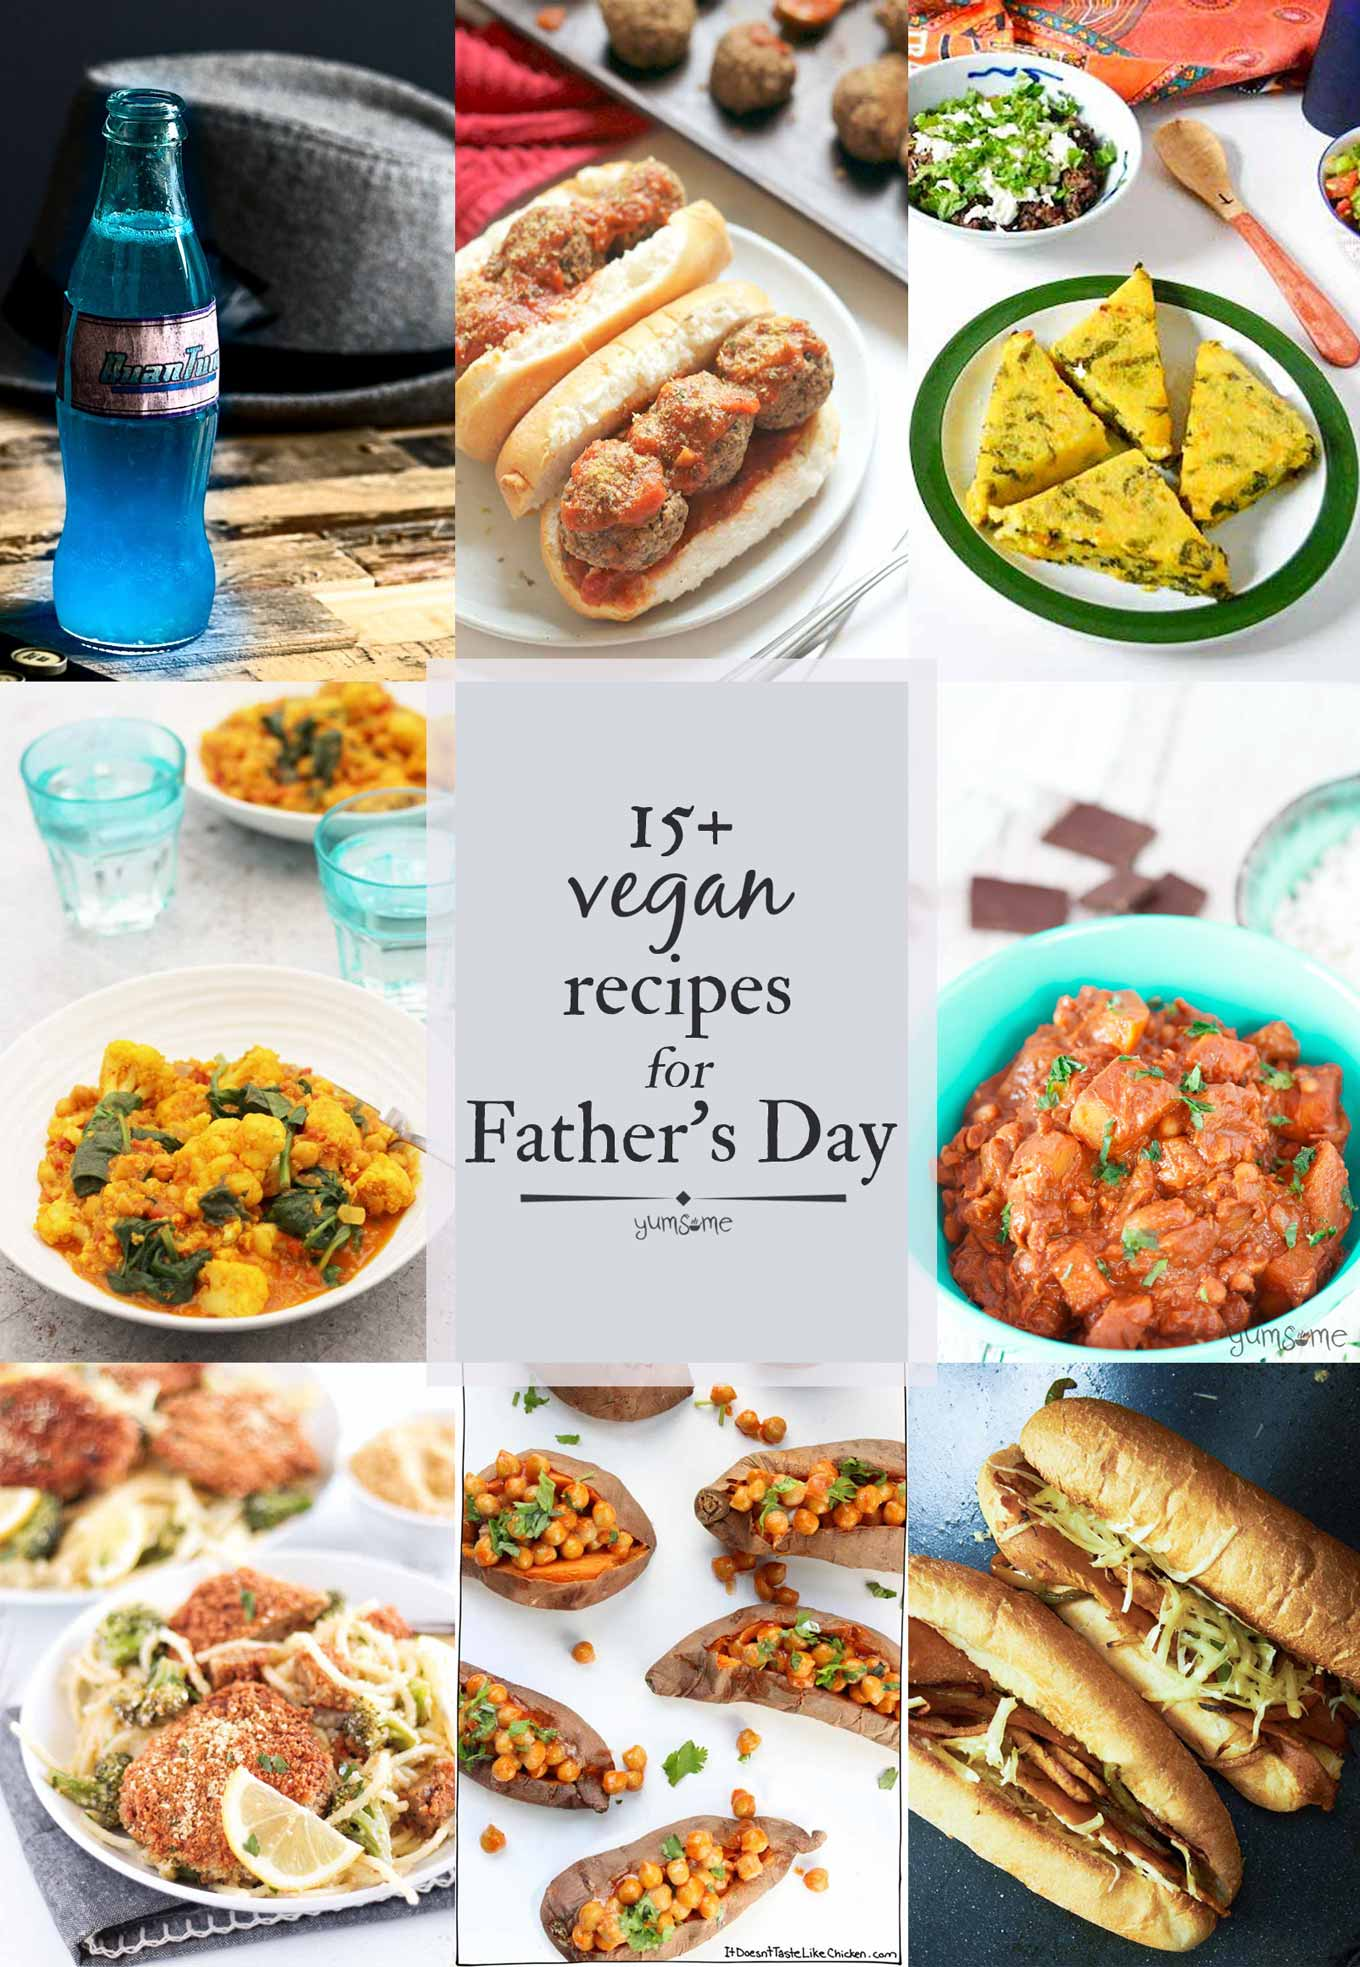 15 manly mouth watering vegan recipes for fathers day 15 manly mouth watering vegan recipes for fathers day yumsome forumfinder Images